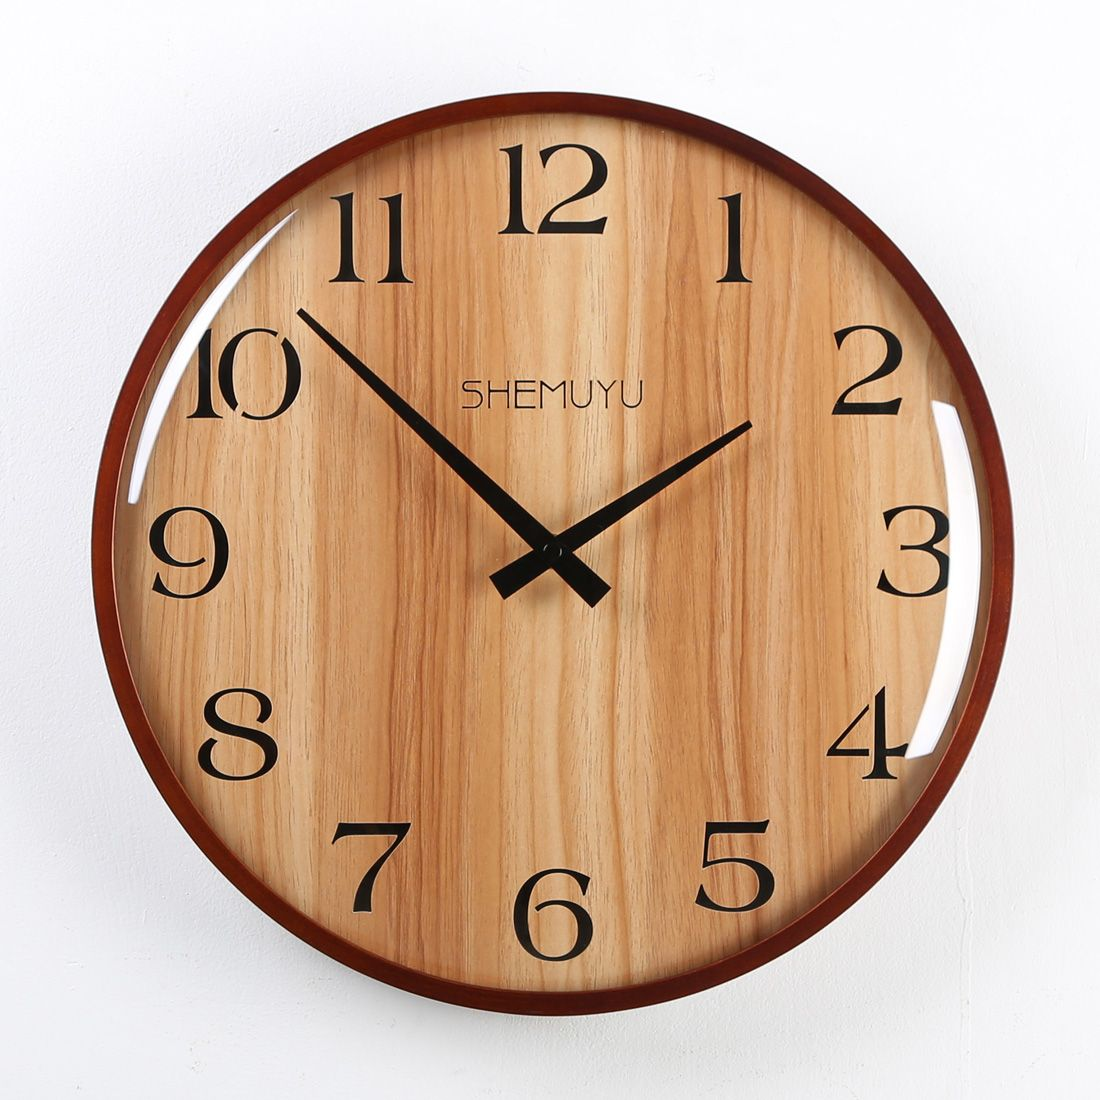 12 Inches Wall Clock Wood Retro Digital Type European Mute Wall Clock Retro Autumn Scenery Clocks Home Decor 2018 Retro Wall Clock Wood Wall Clock Wall Clock